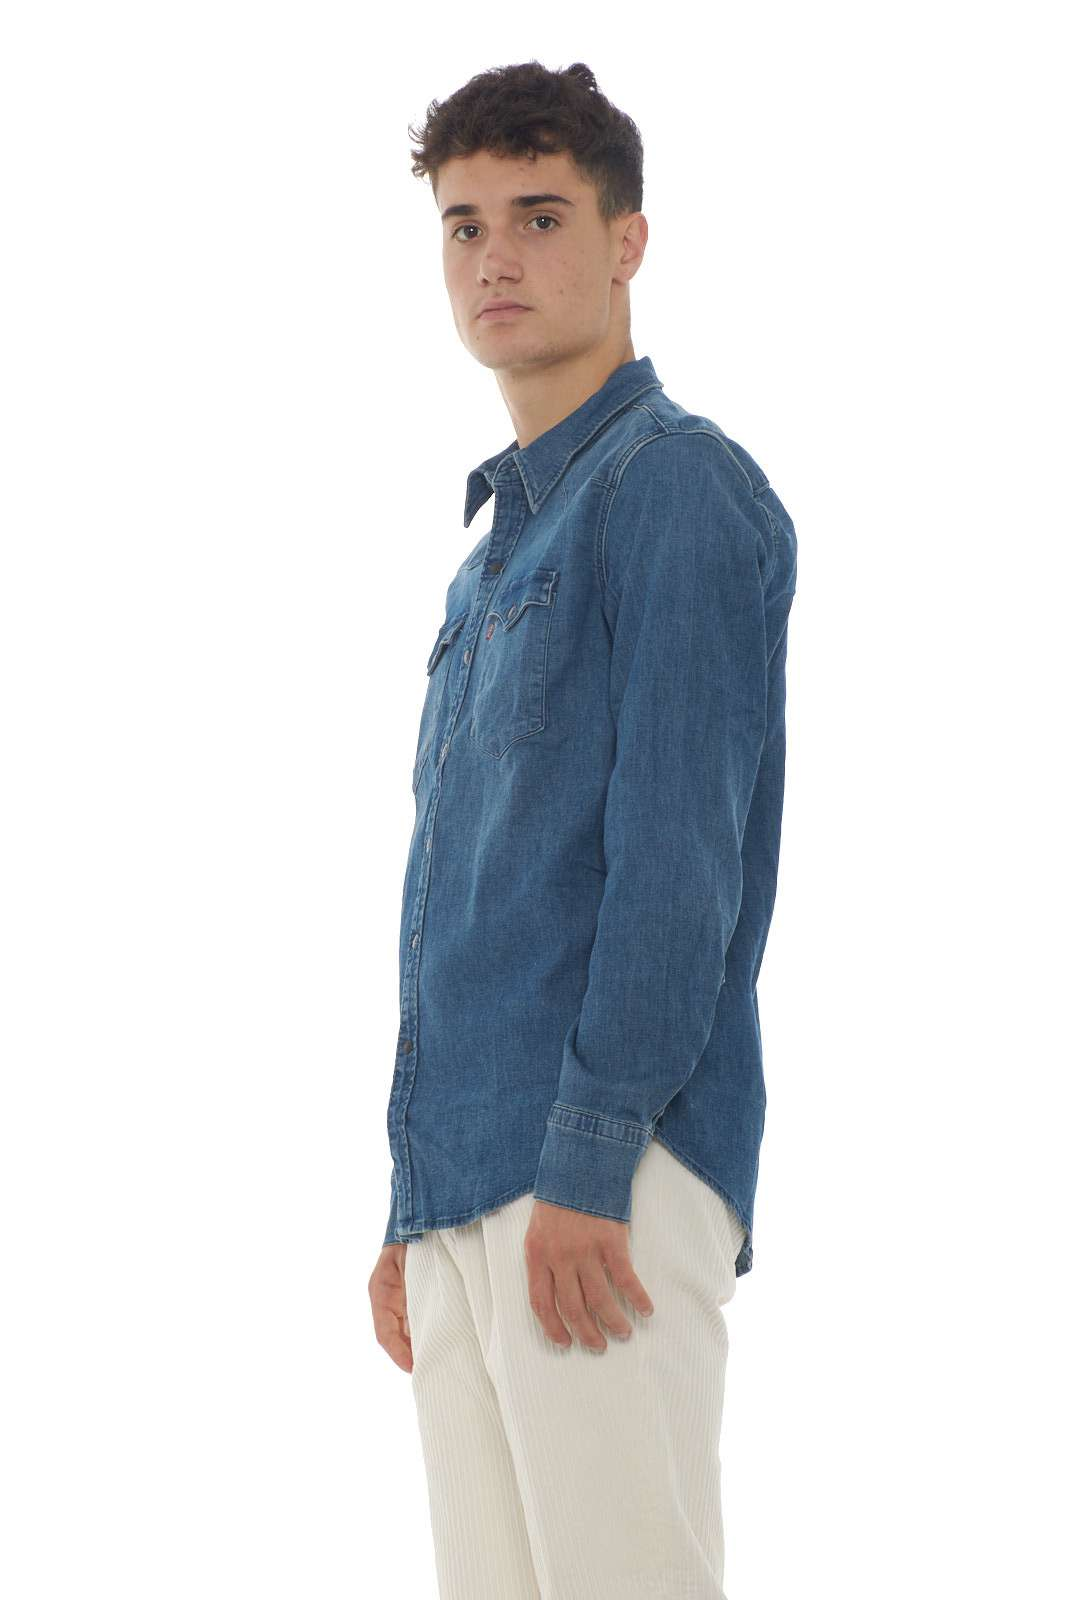 https://www.parmax.com/media/catalog/product/a/i/AI-outlet_parmax-camicia-uomo-Levis-658160318-B_1.jpg